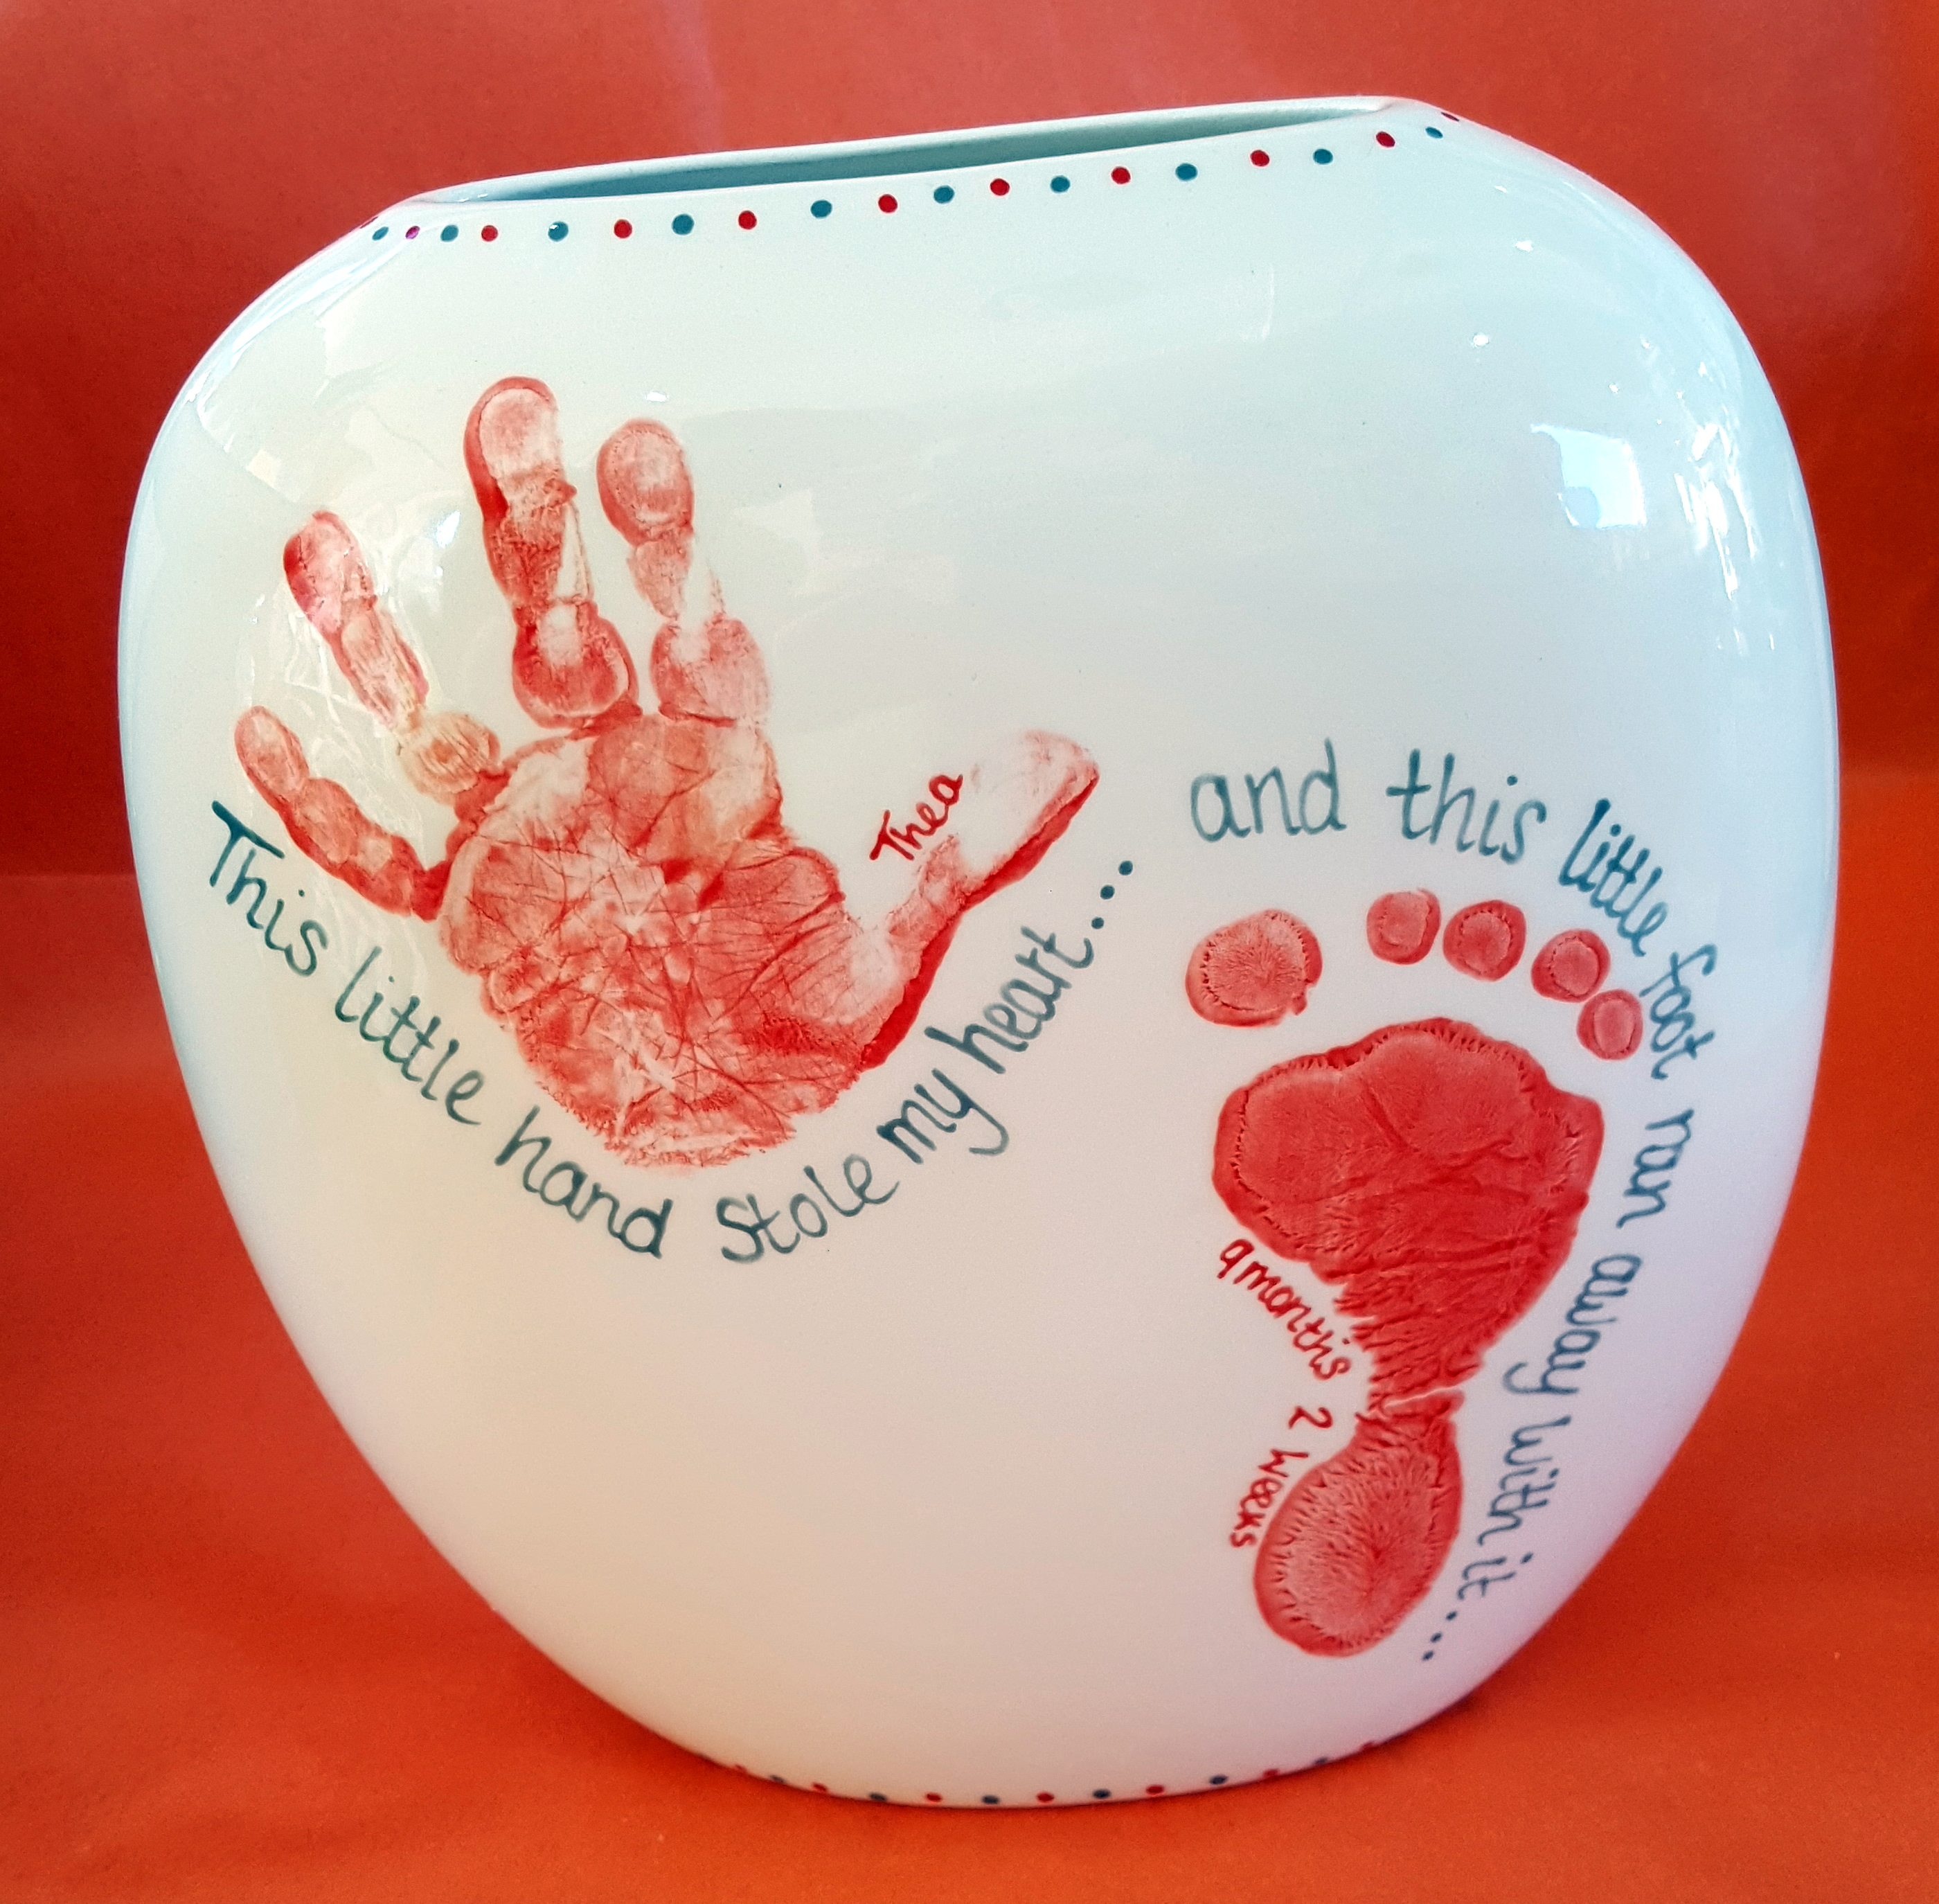 This little hand stole my heart - this little foot ran away with it - Vase